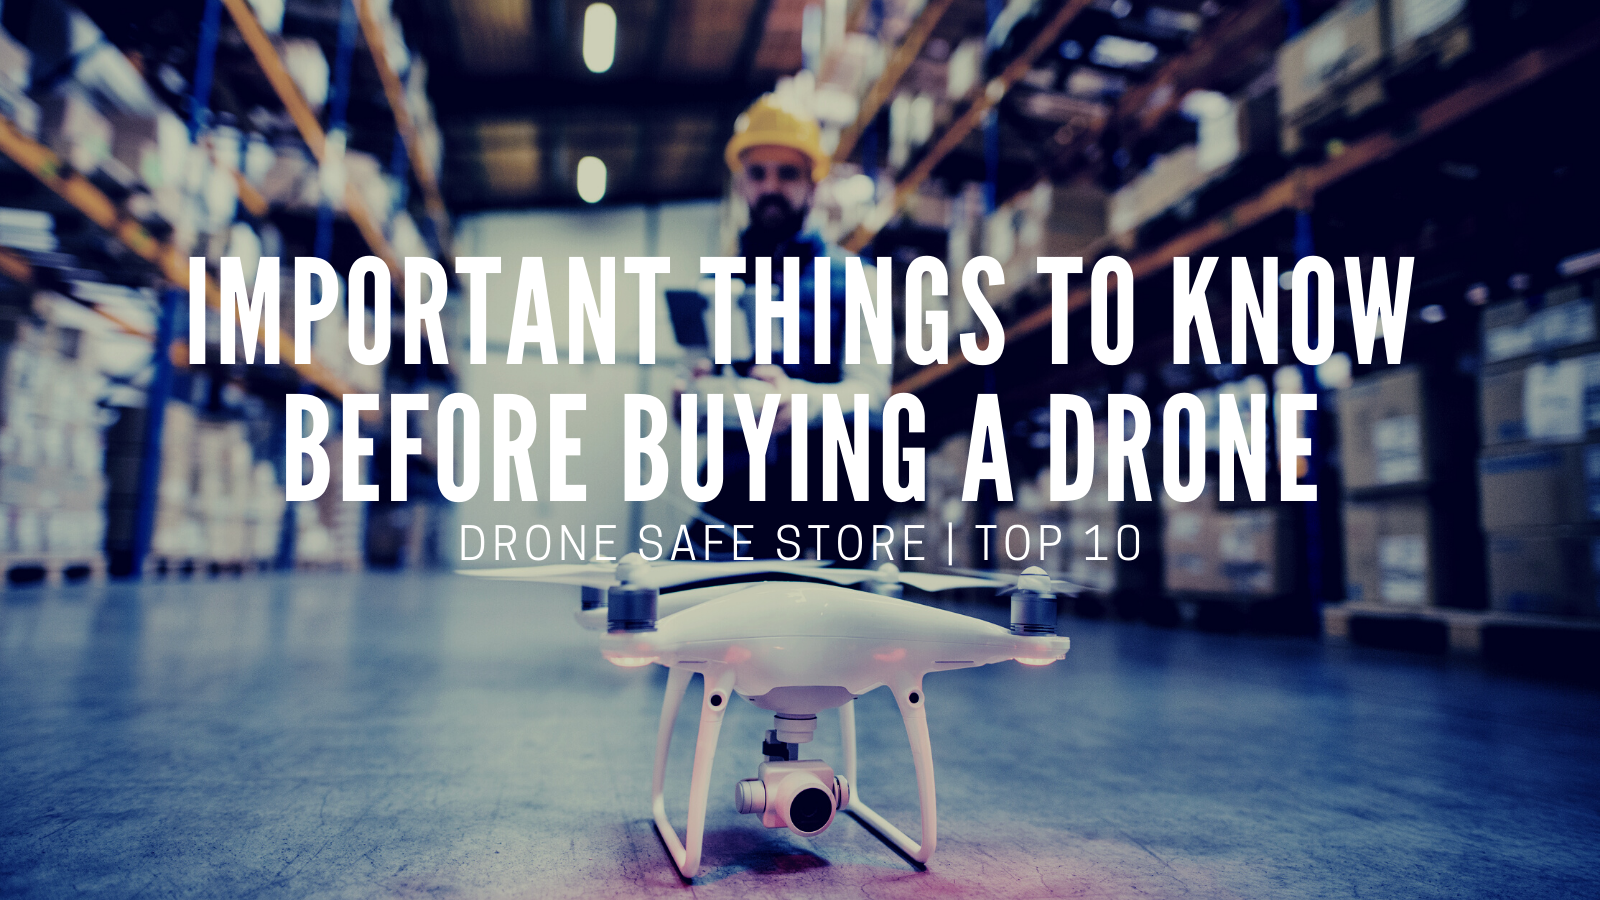 Top 10 Things To Know Before Buying A Drone